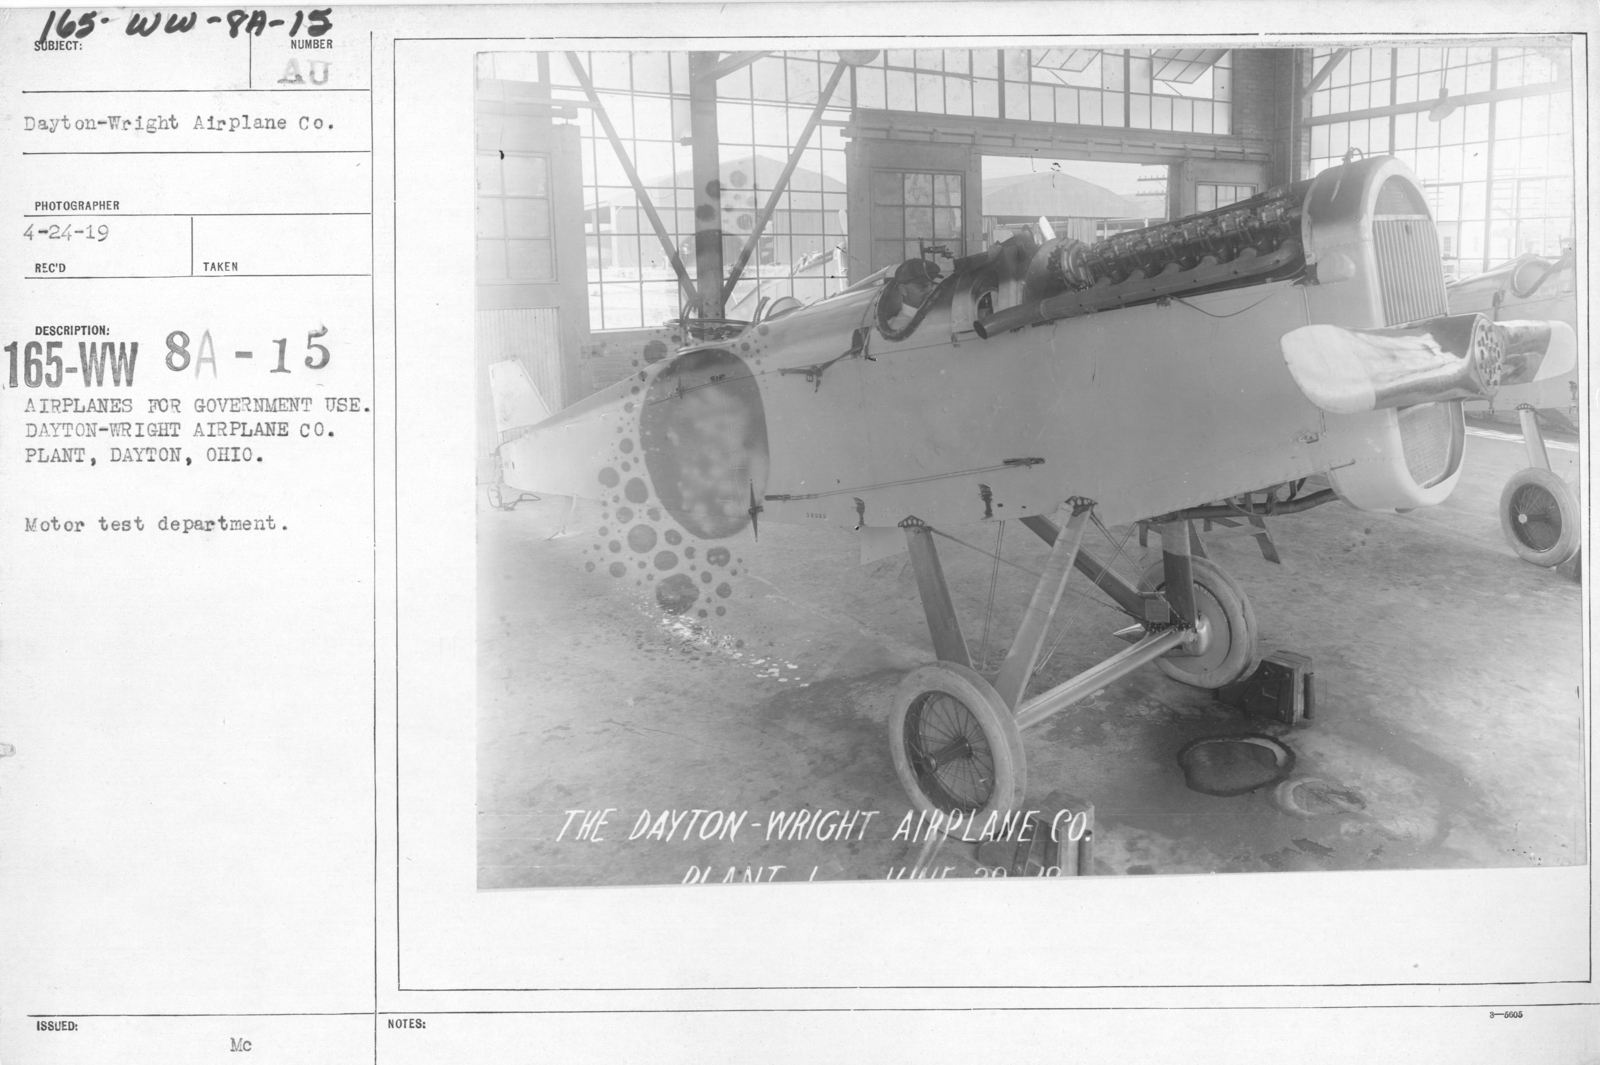 Airplanes - Inspection - Airplanes for government use. Dayton-Wright Airplane Co. Plant, Dayton, Ohio. Motor test department